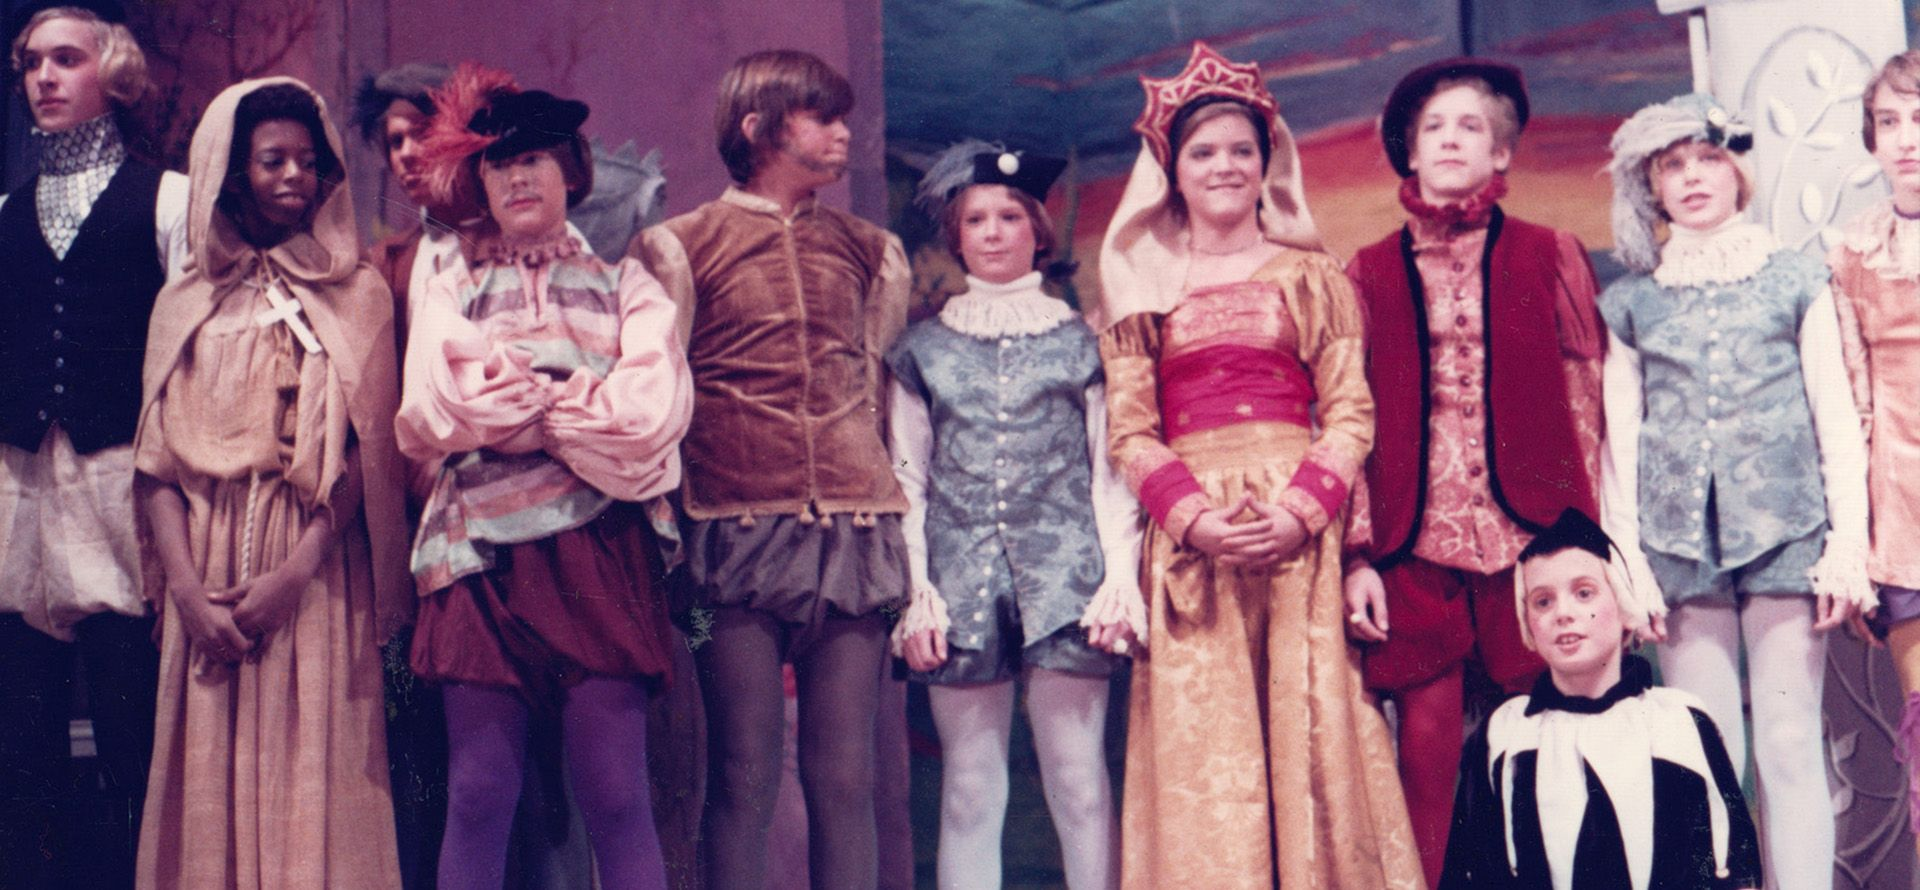 1977, Twelfth Night